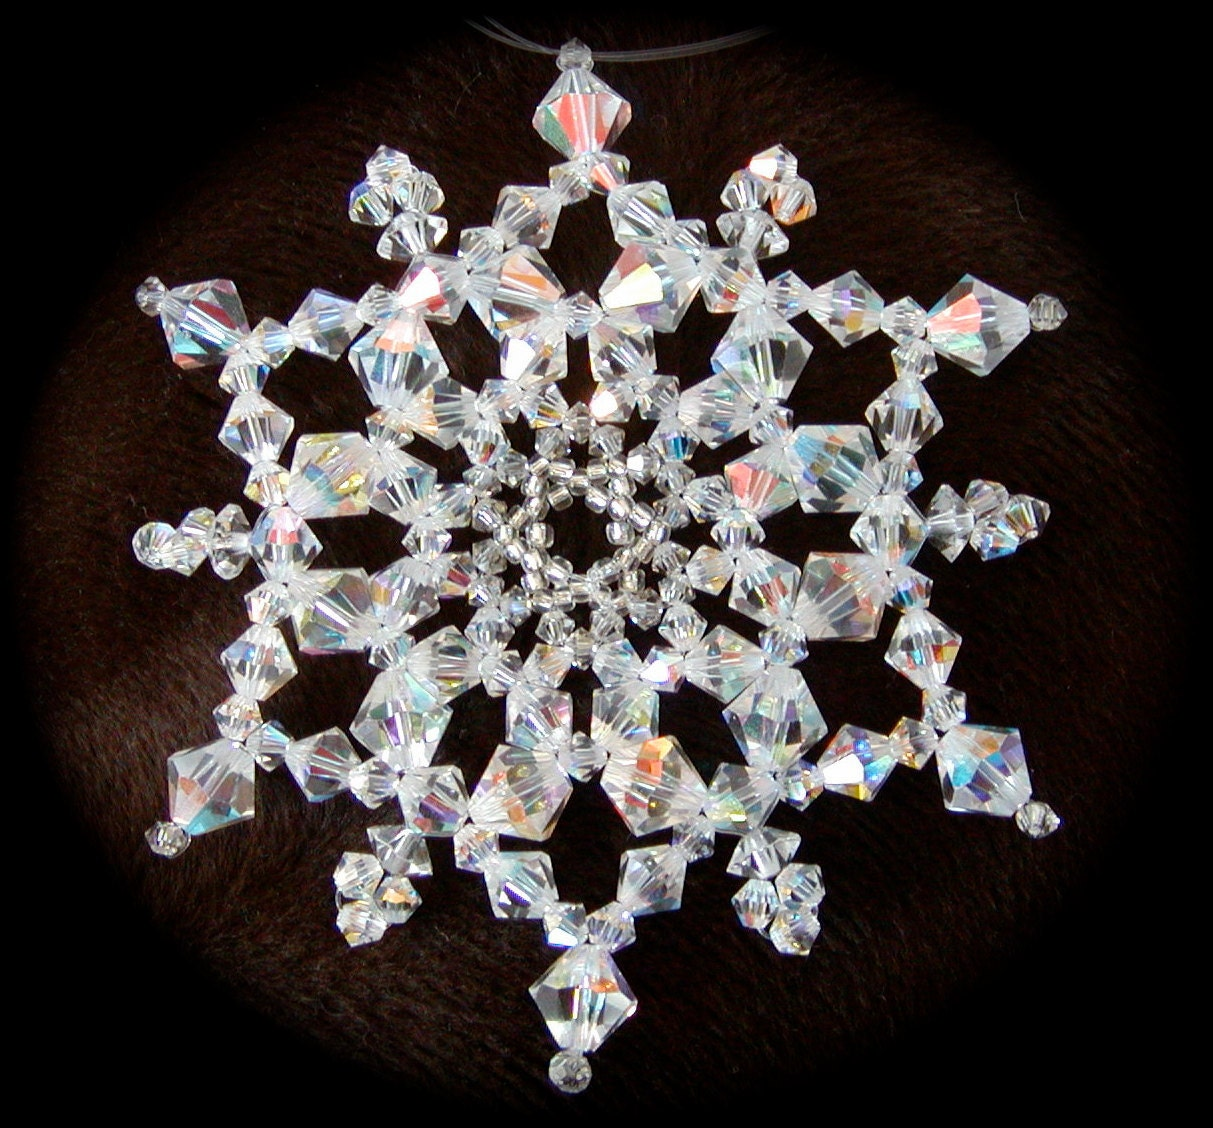 Crystal Snowflake With Spacers Ornament Tutorial